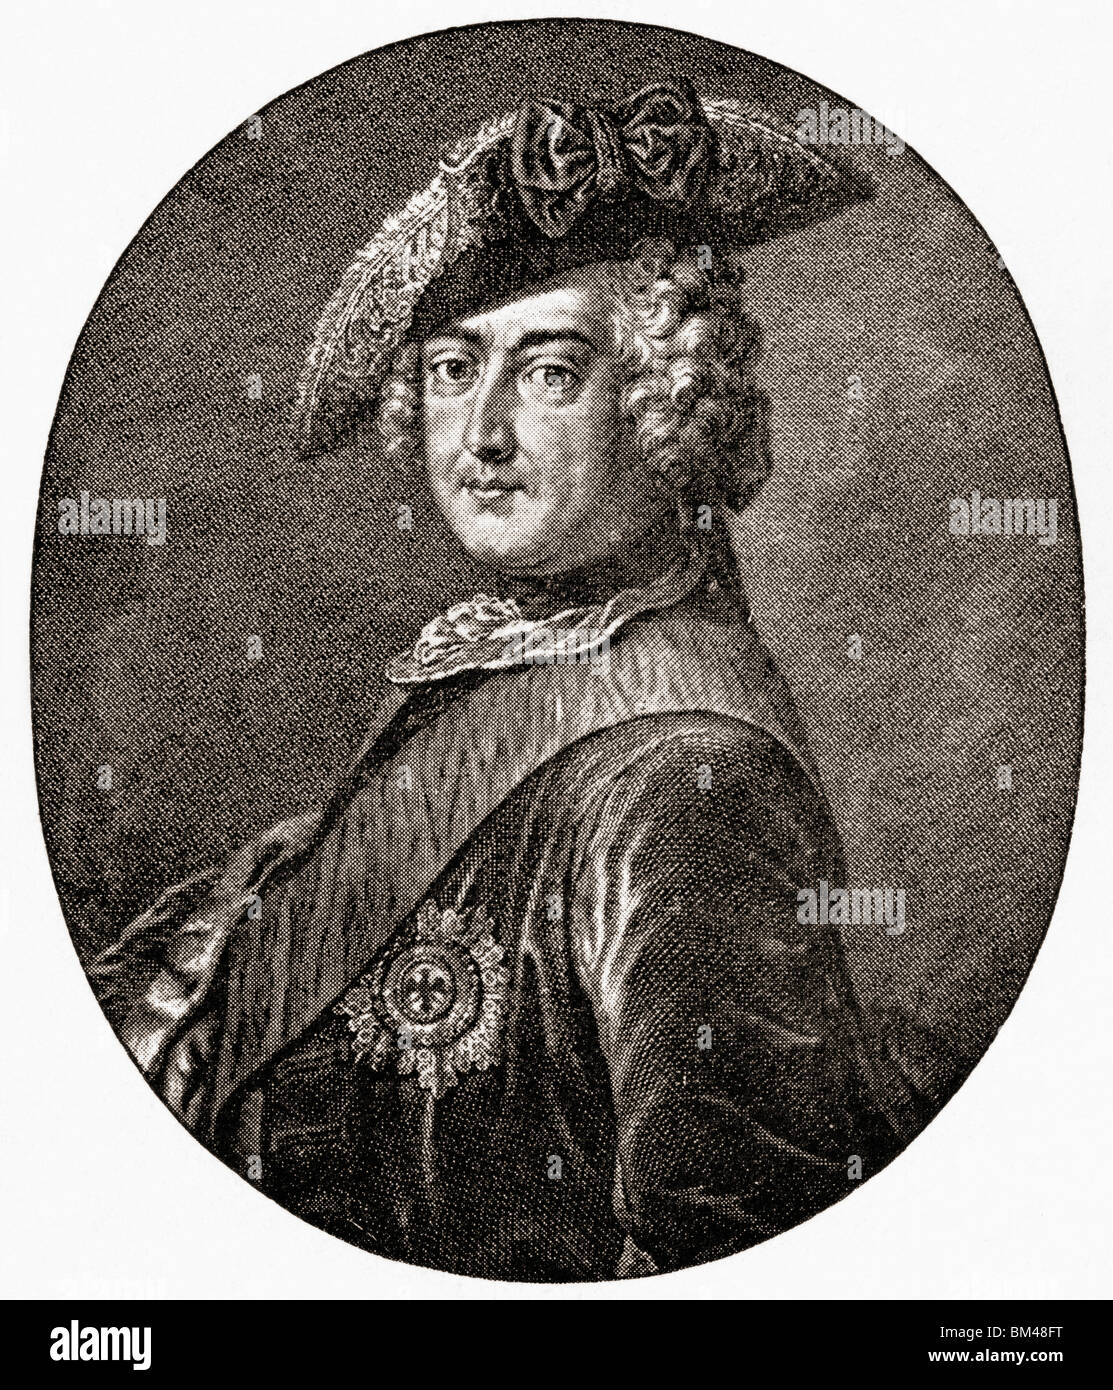 Frederick II, 1712 to 1786. King of Prussia, and, as prince-elector of the Holy Roman Empire, Frederick IV of Brandenburg. - Stock Image